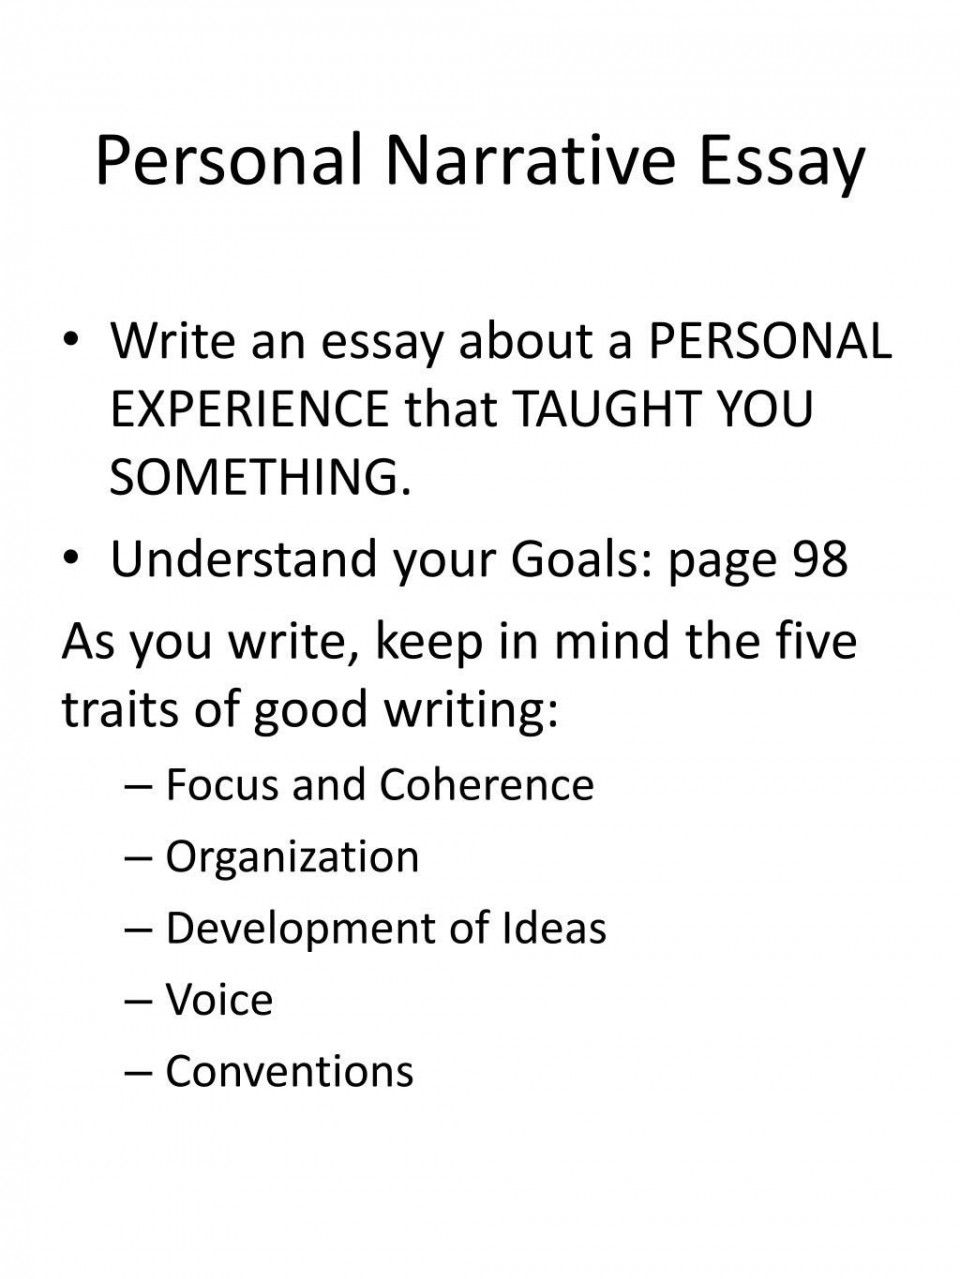 008 Striking Personal Narrative Essay High Resolution  Structure Sample School Prompt960